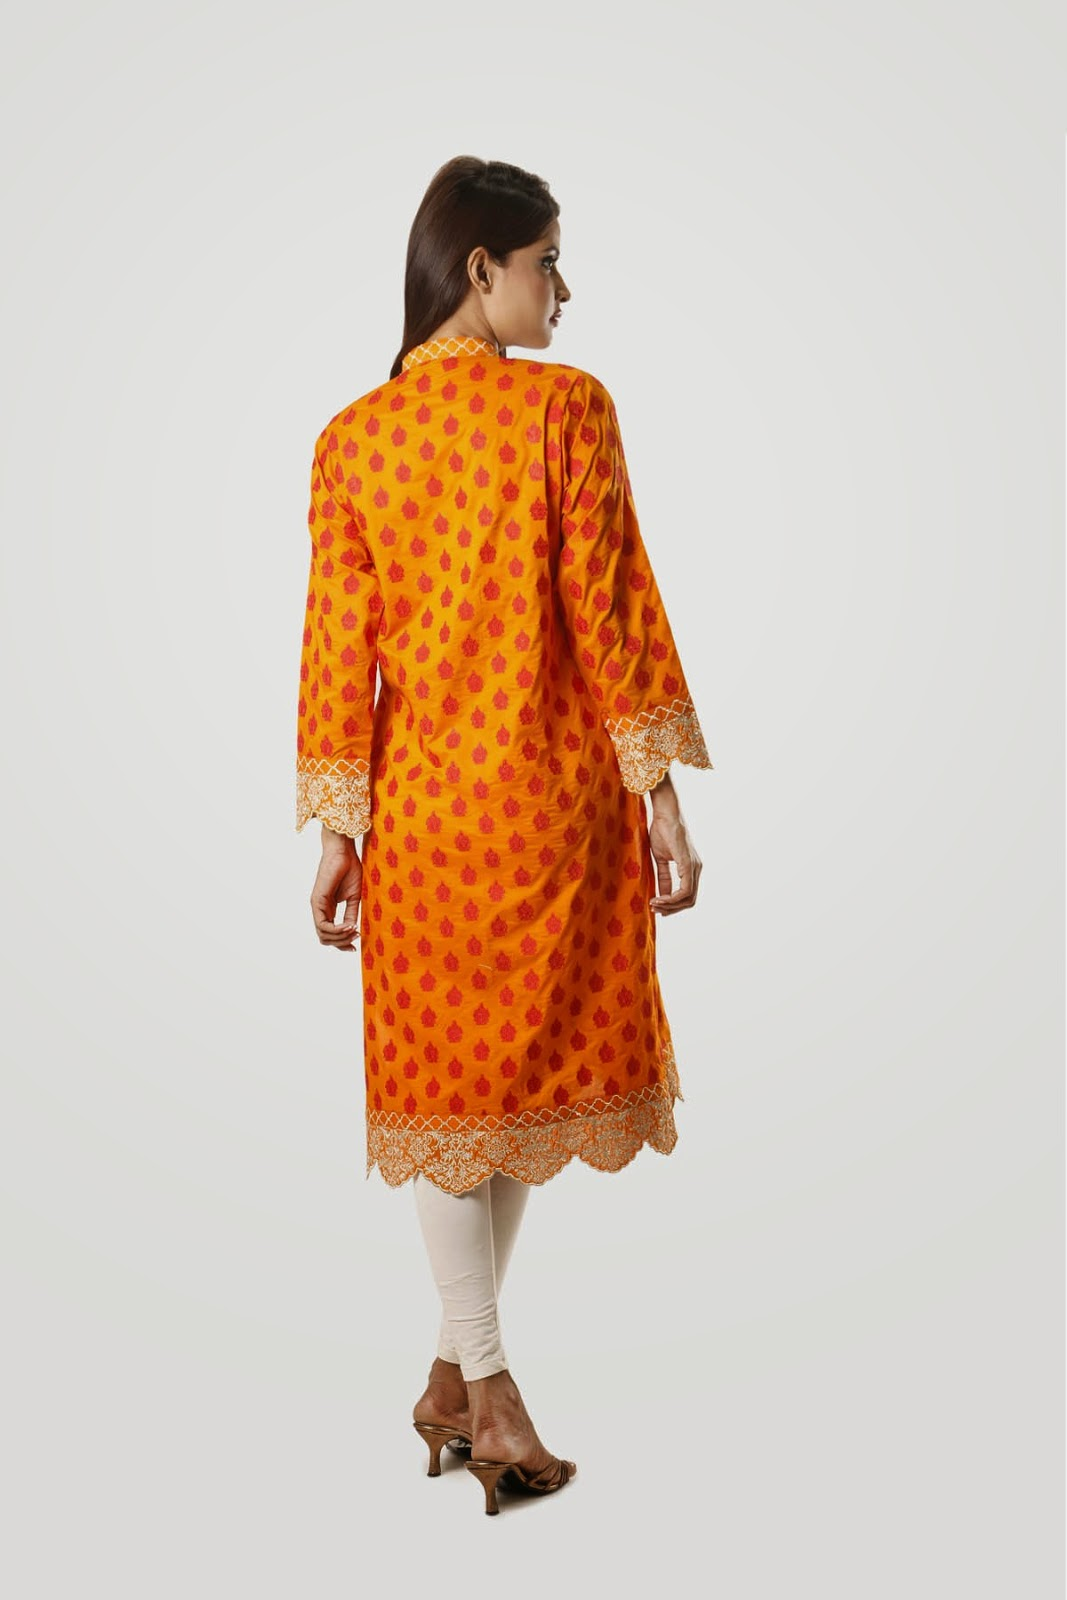 Embroidered Dress collection 2015 in Orange Cotton Fabric